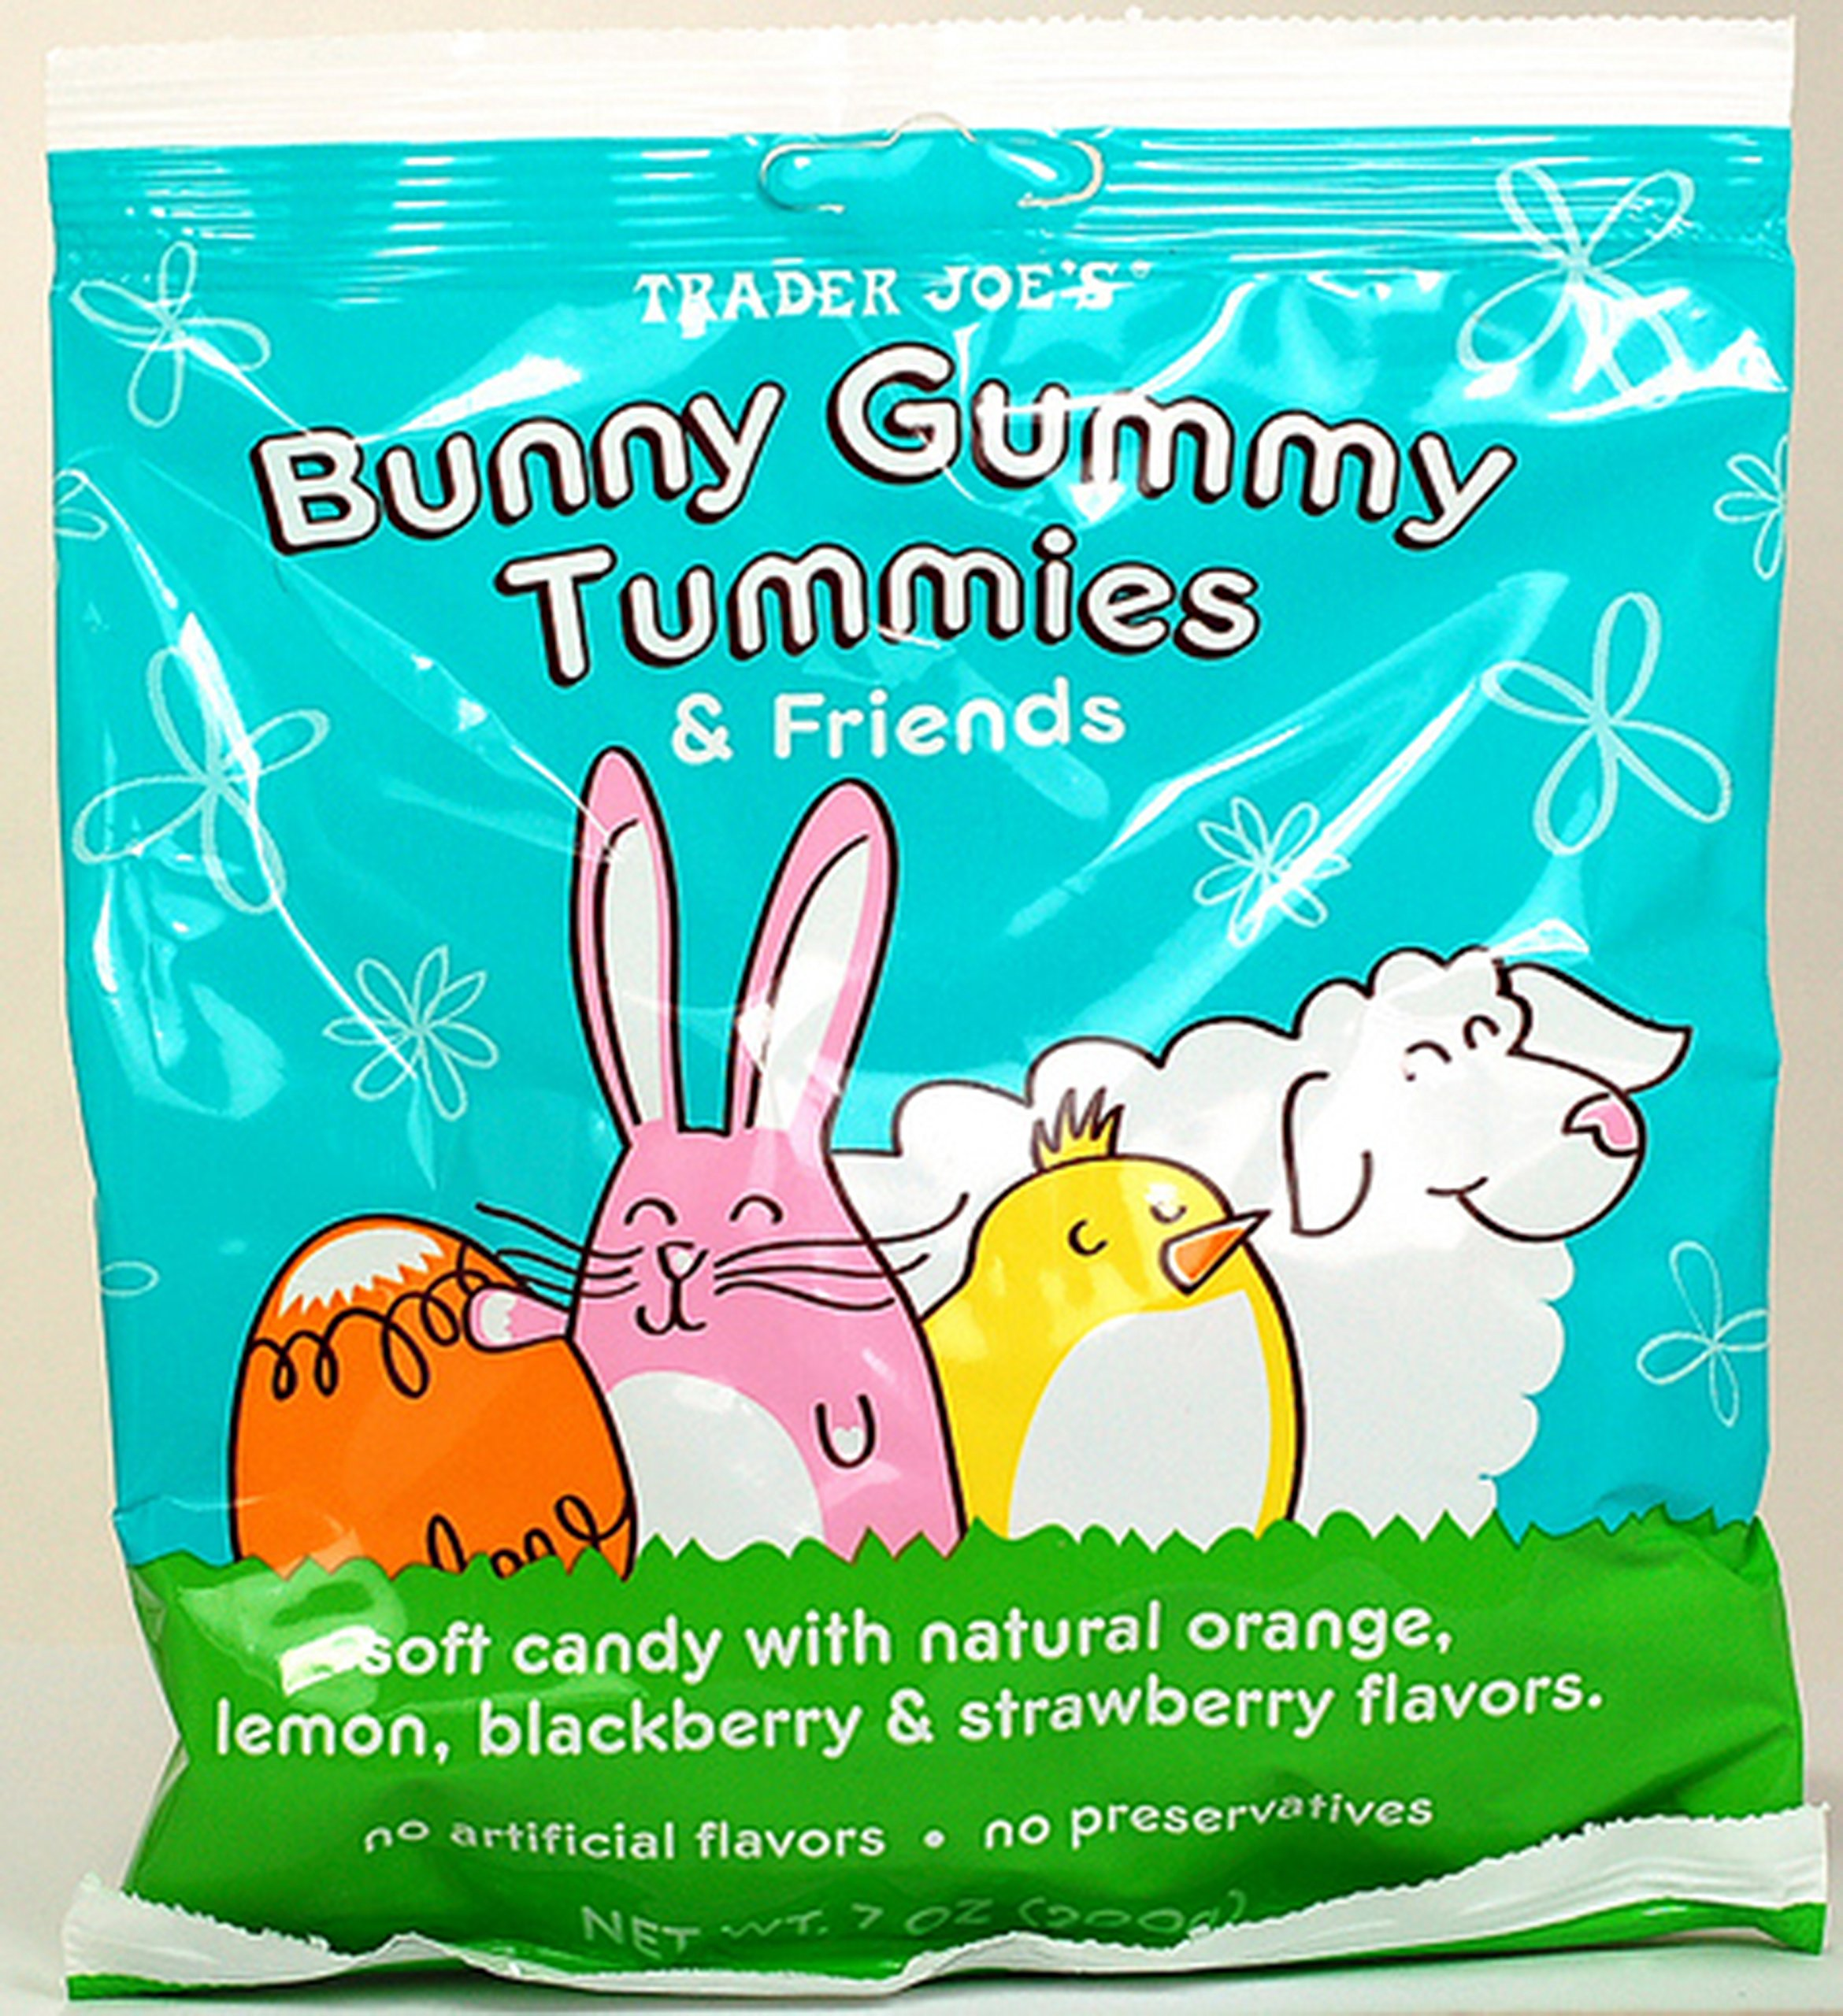 Trader Joe's Bunny Gummy Tummies & Friends Natural Flavors No Preservatives 7 Oz. (Pack of 2)